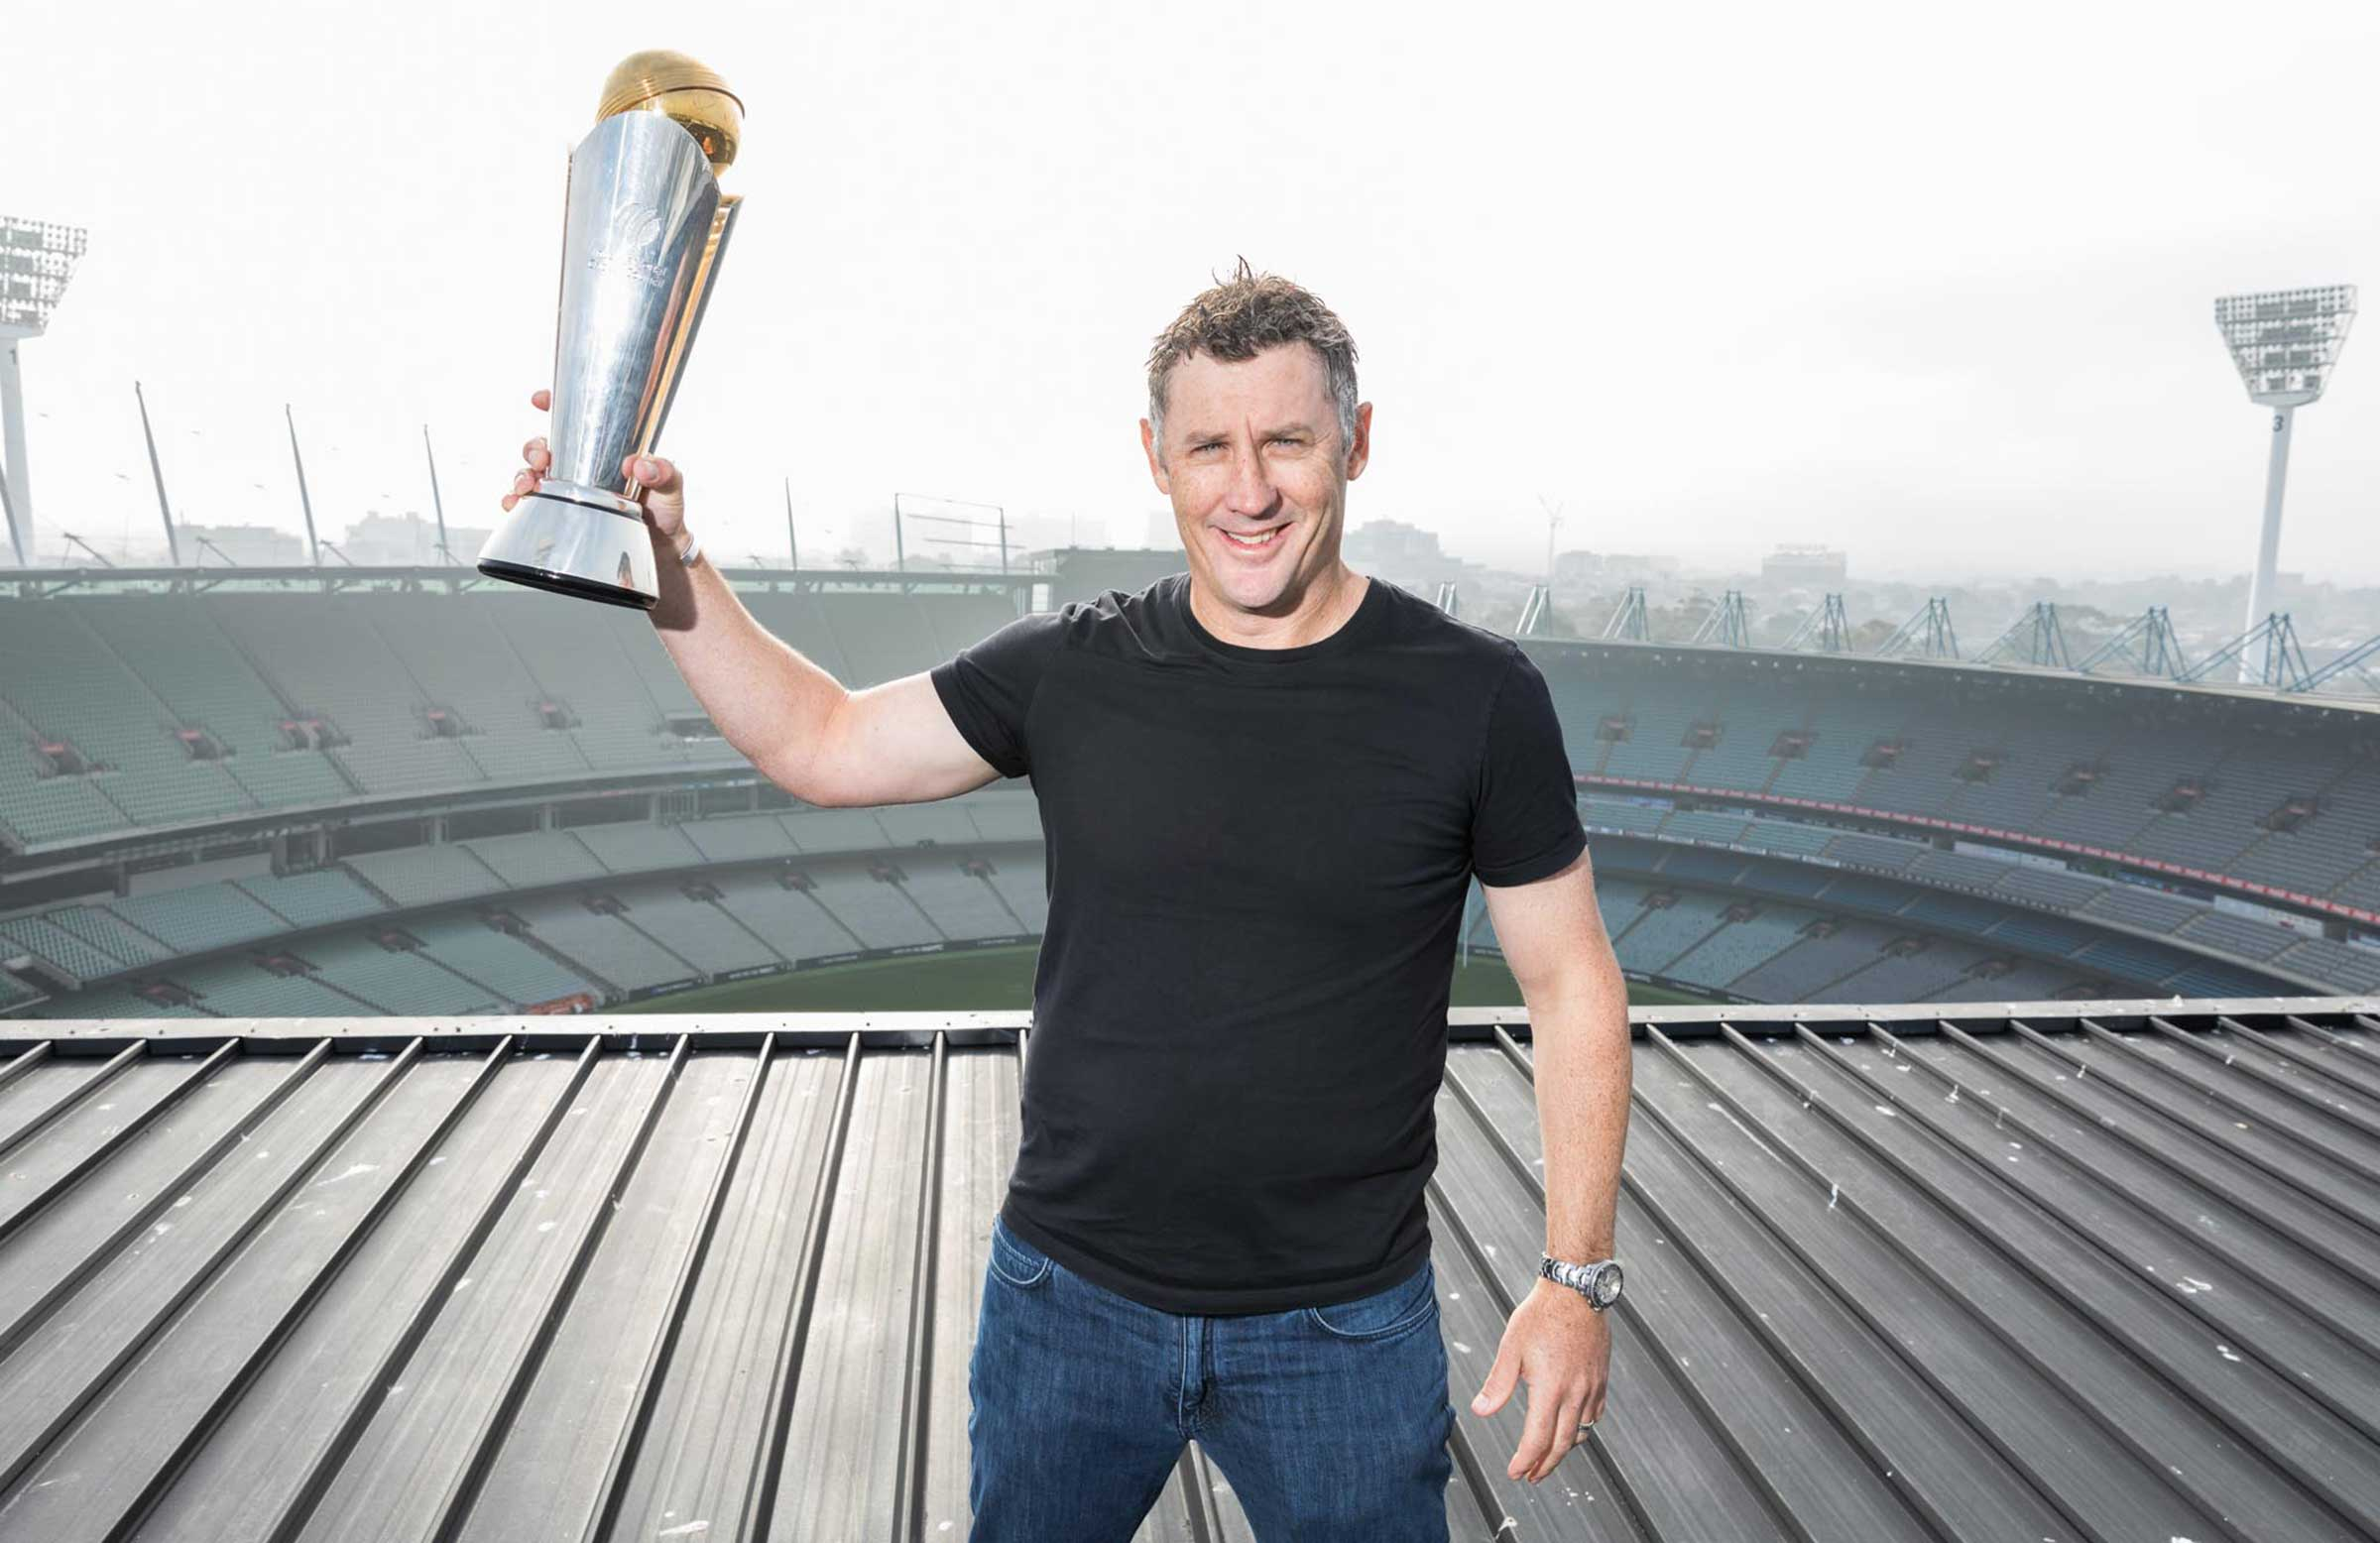 David Hussey takes the Champions Trophy onto the roof of the MCG // ICC